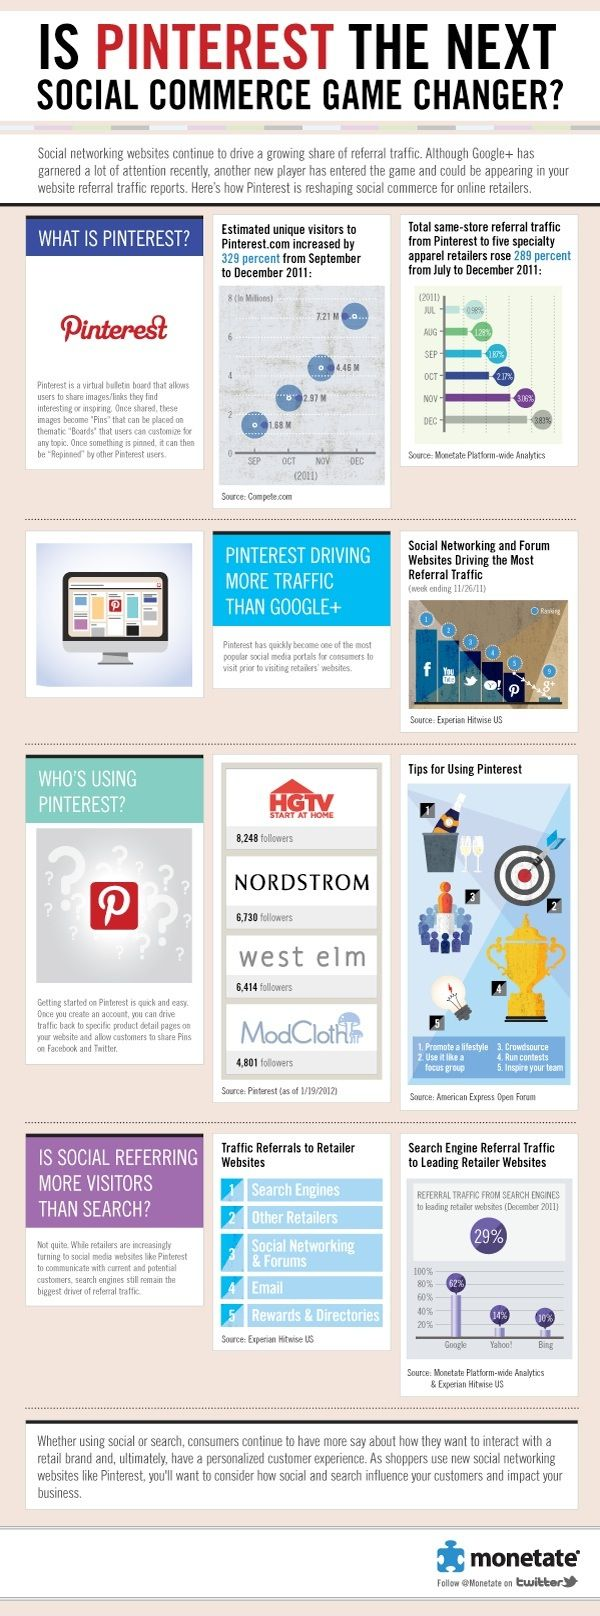 Infographic: Pinterest Drives More Traffic to Retailers Than Google+